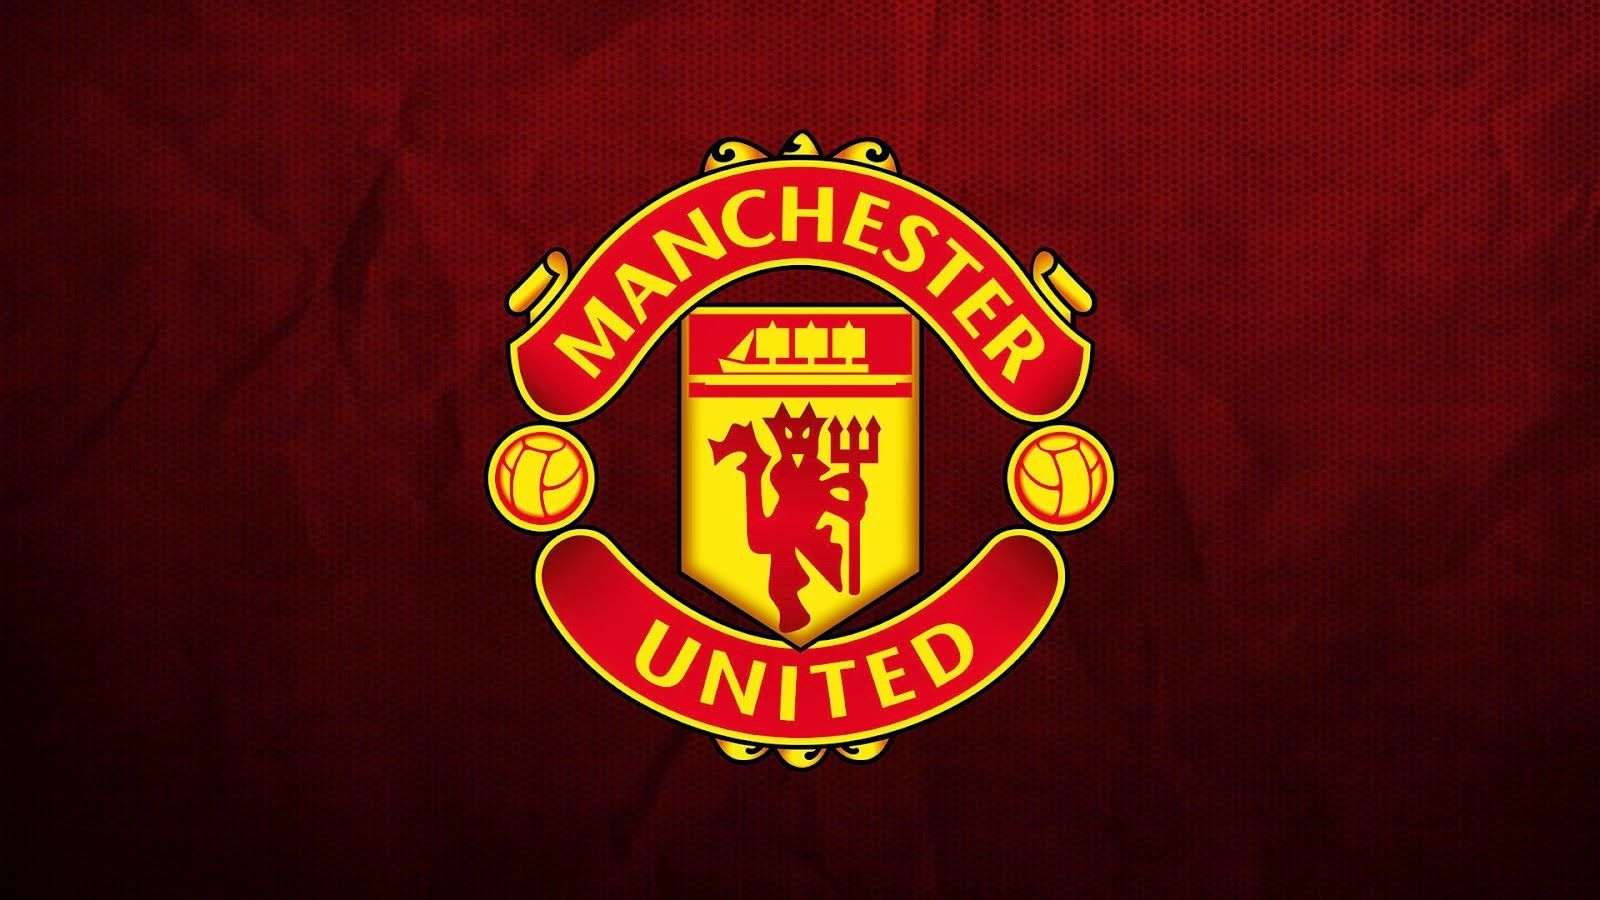 Manchester united logo wallpapers hd 2015 wallpaper cave epic manchester united logo wallpapers hd 2015 wallpaper cave voltagebd Choice Image